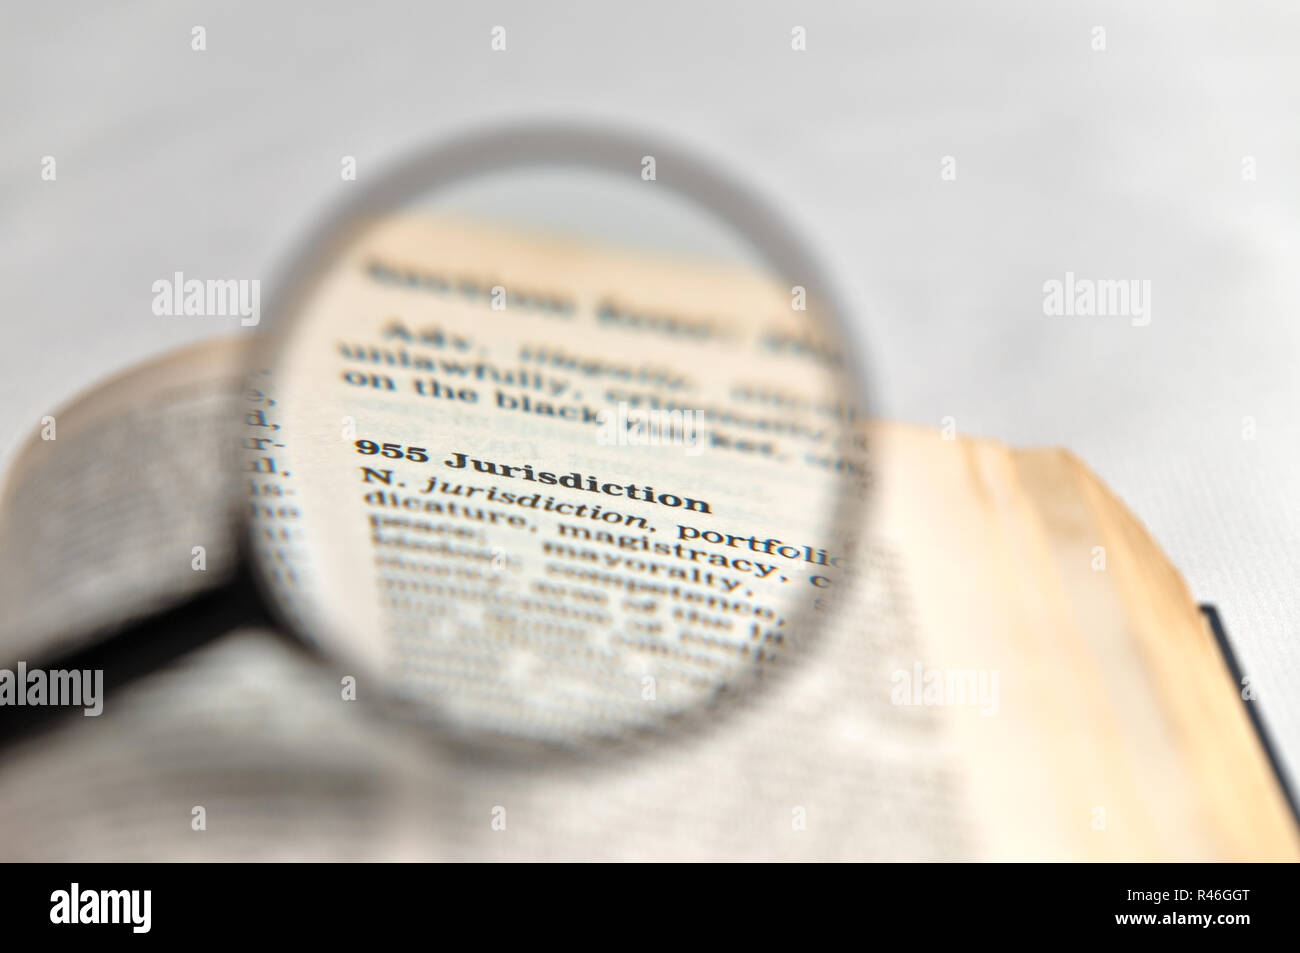 Jurisdiction word magnified on book Stock Photo